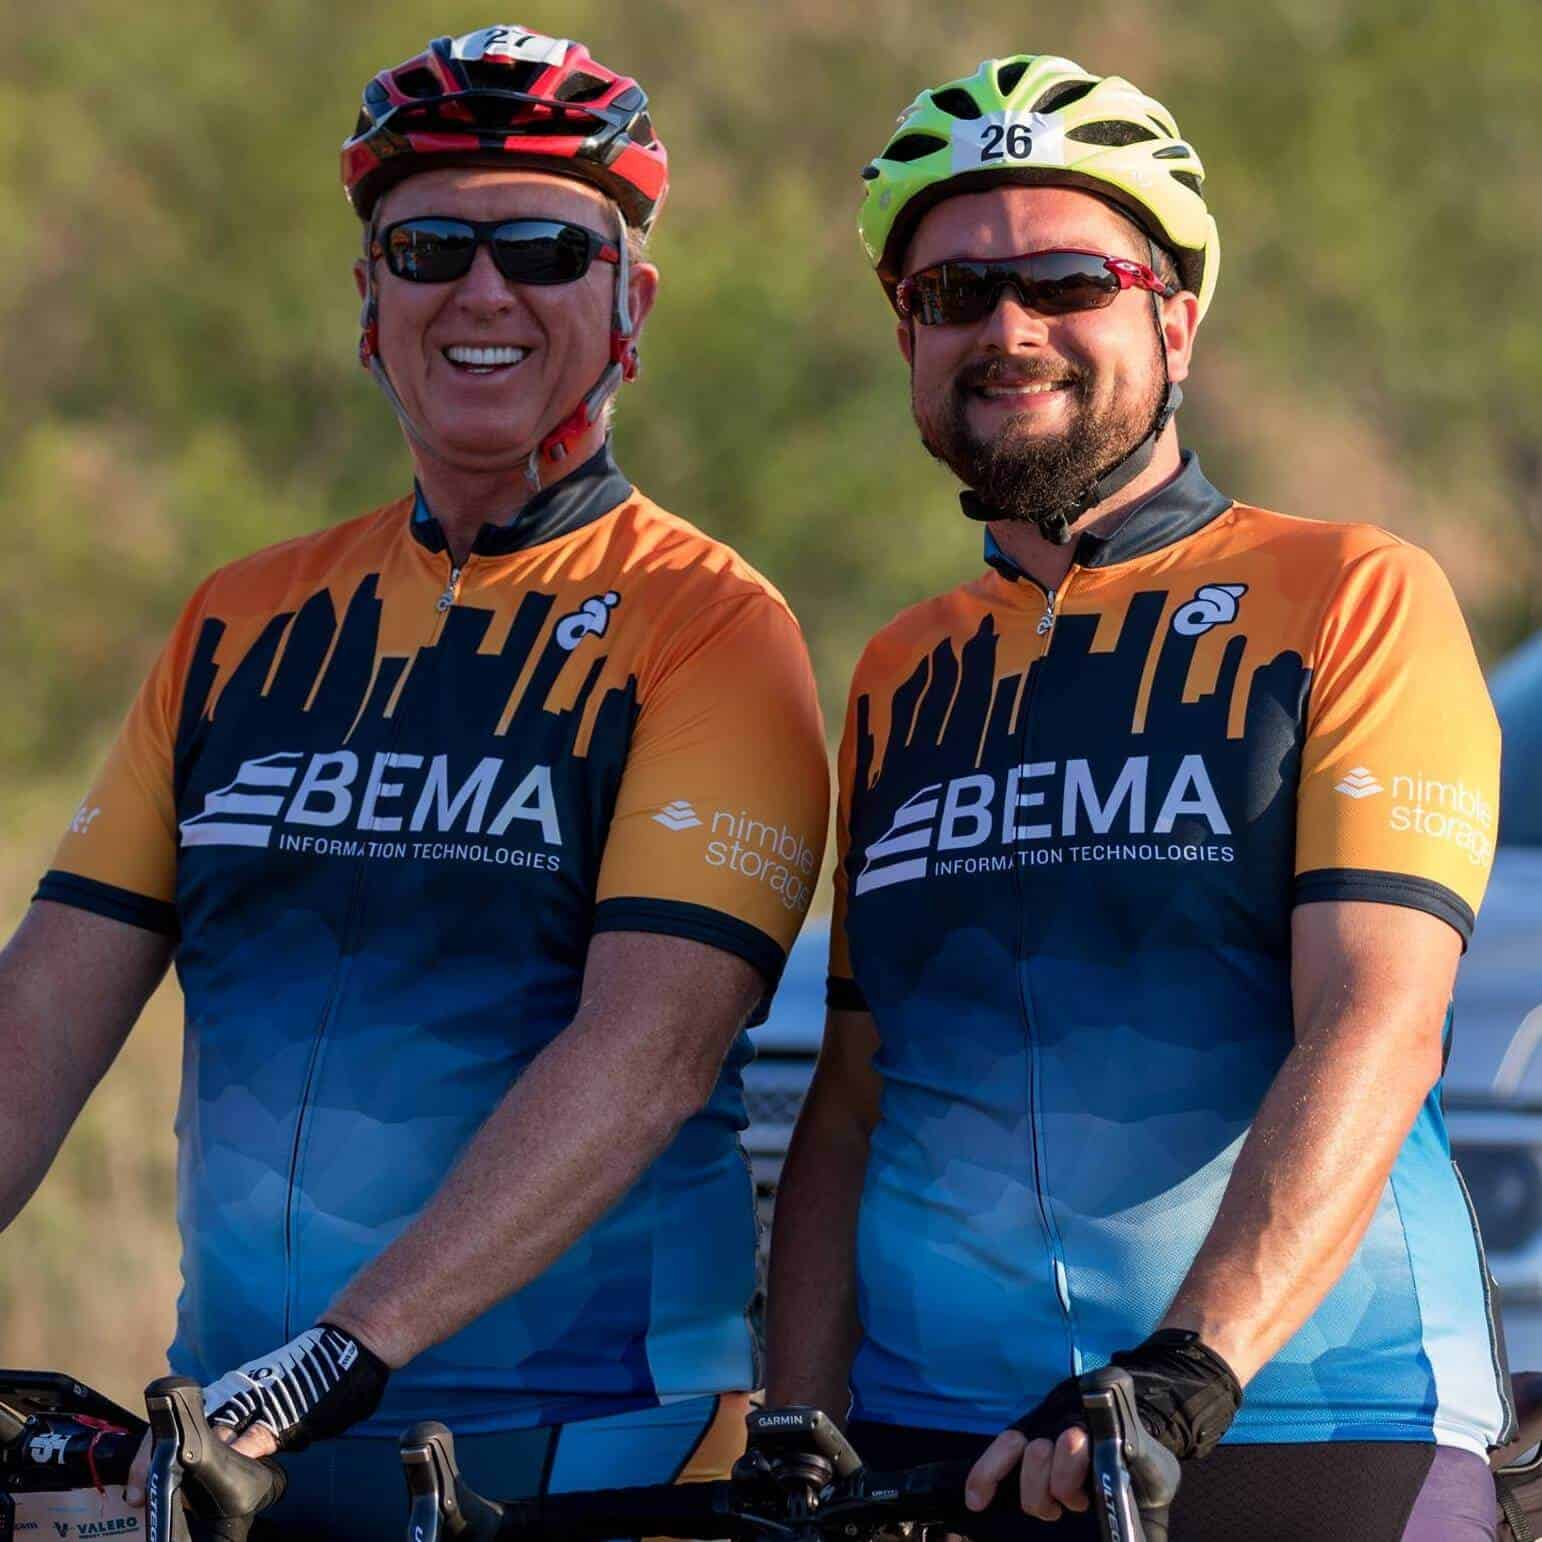 Web Design Company Houston - WizardsWebs Design LLC Houston, TX - Steve Green and son Christopher Green are proud to both be 2017 Club 300 Top Fundraisers for the BP MS150 Bike Ride supporting National Multiple Sclerosis Society